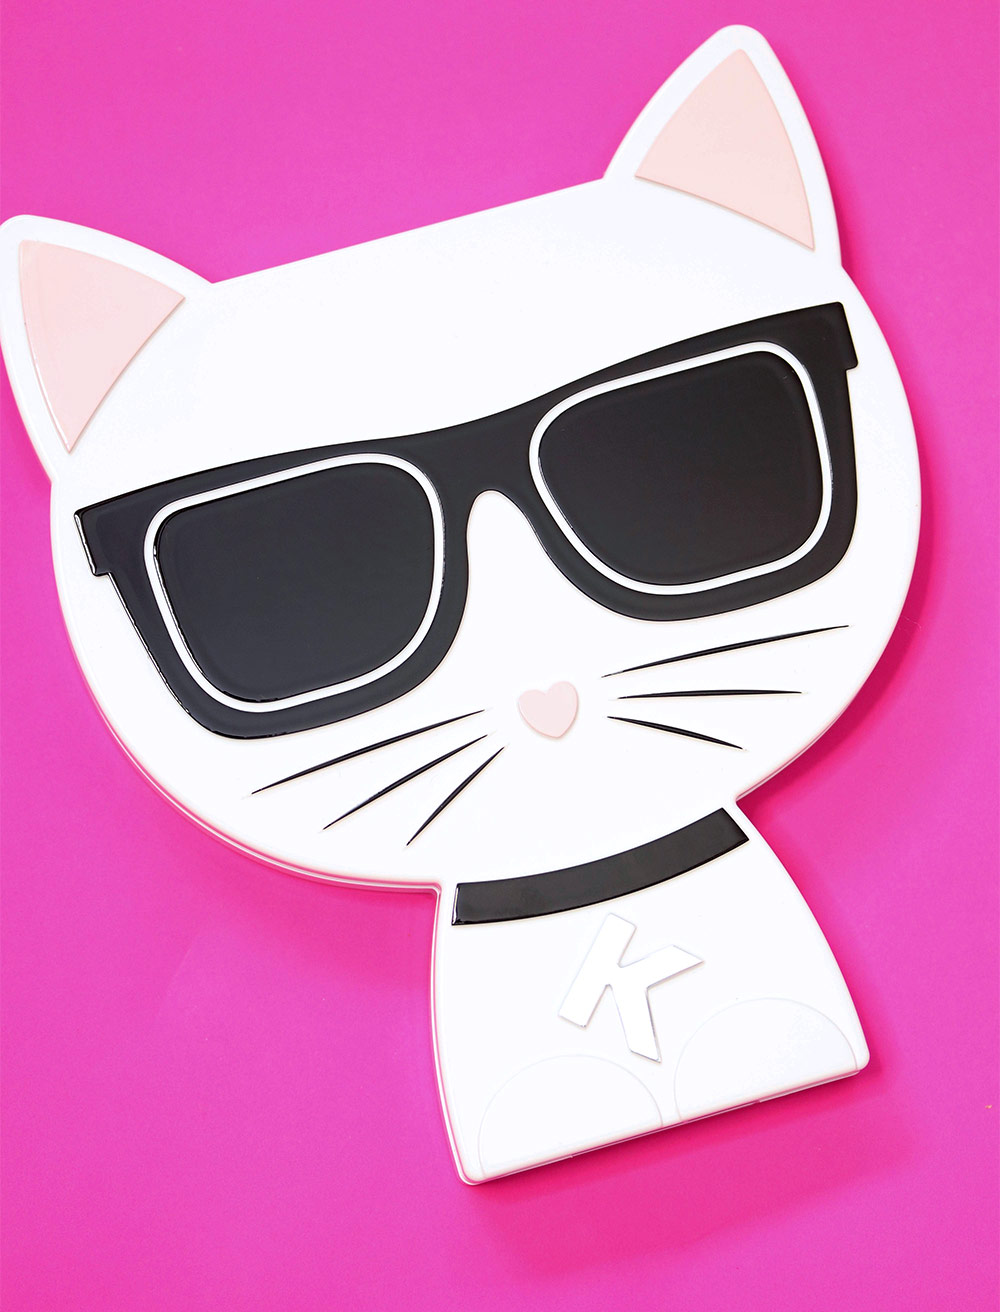 karl lagerfeld model co choupette palette